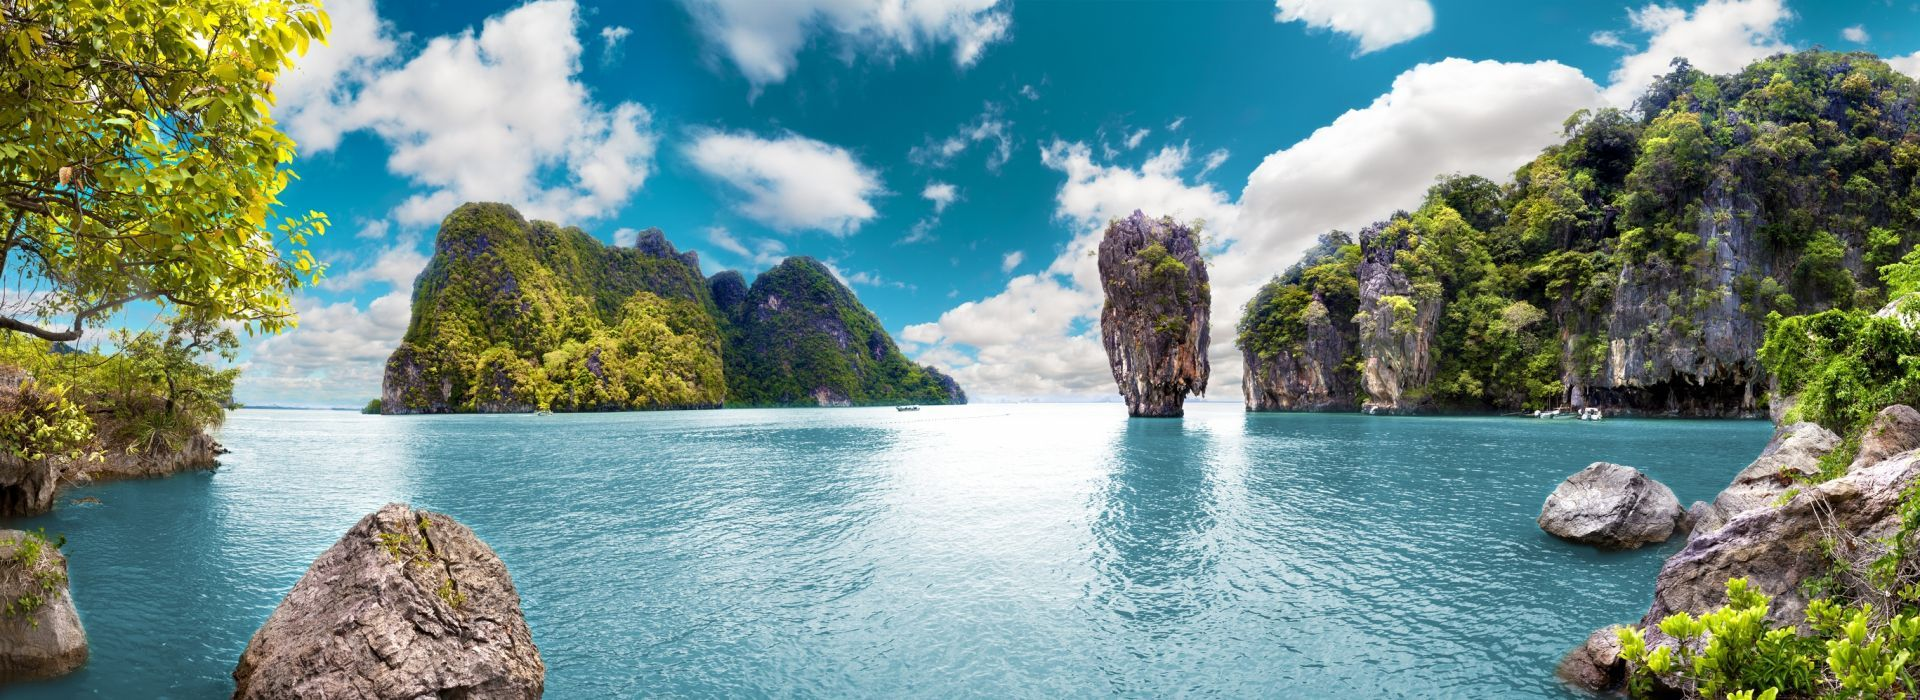 Beach, romance, getaways and relaxation Tours in Krabi